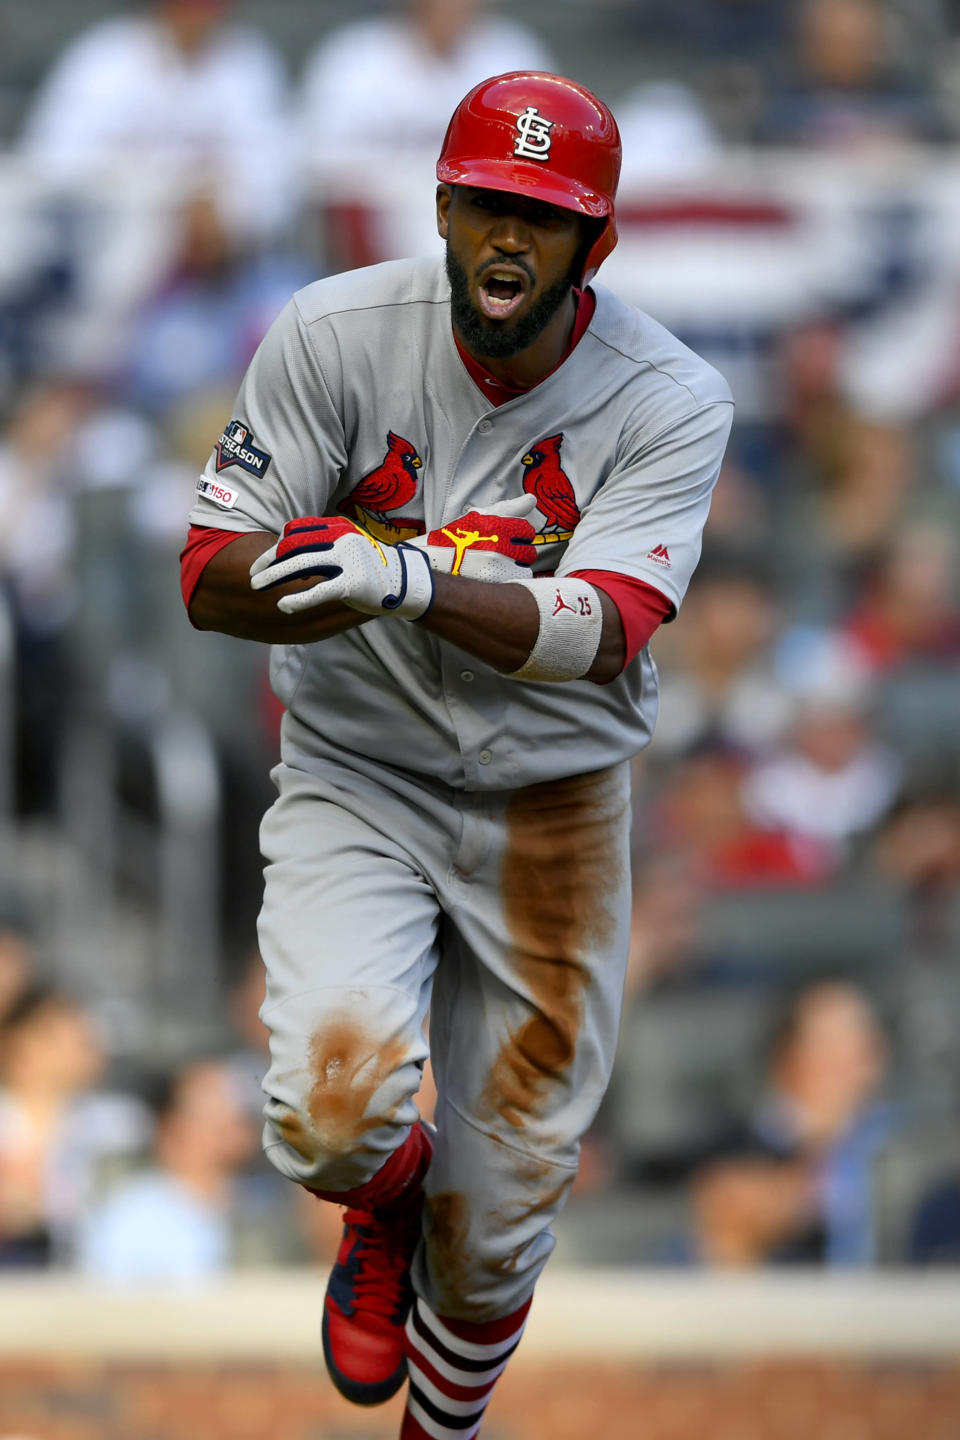 St. Louis Cardinals' Dexter Fowler hits a three-run double during the first inning of Game 5 of their National League Division Series baseball game against the Atlanta Braves, Wednesday, Oct. 9, 2019, in Atlanta. (AP Photo/John Amis)